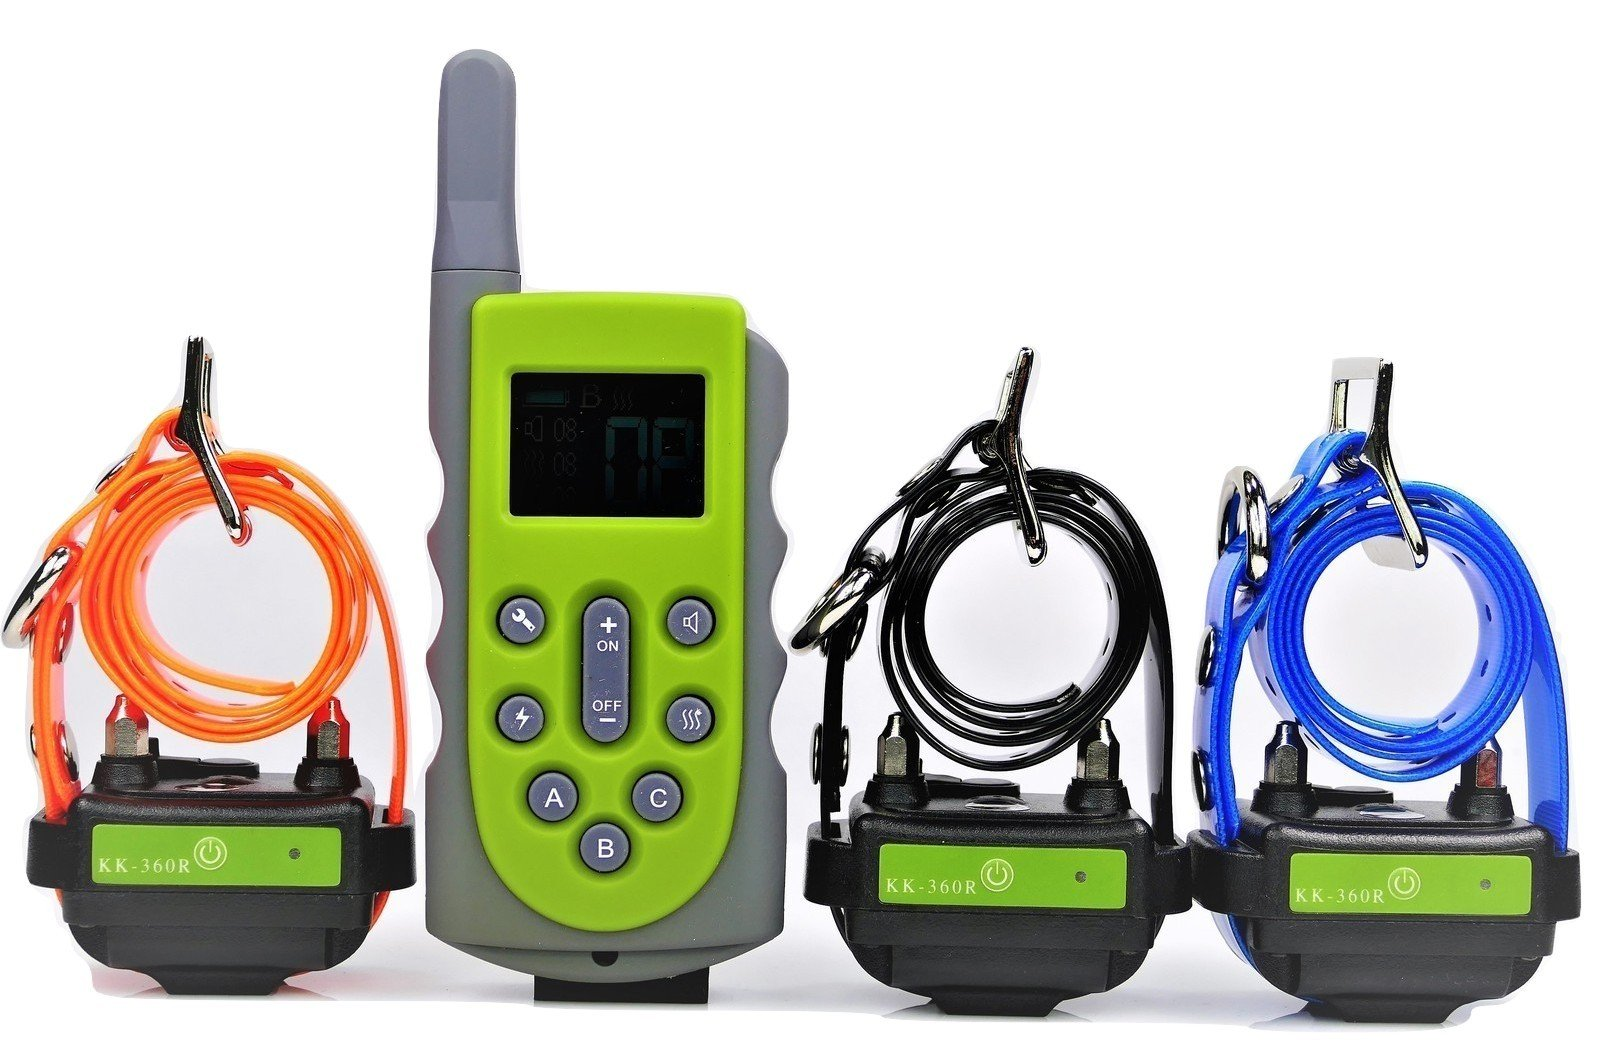 KOOLKANI 650 Yards Remote Dog Training Shock Collar Obedience Trainer:Rechargeable Waterproof Collar w/10 Levels of Adjustable Static Stimulation,Beep Tone and Vibration (3-Dog Collar Set) by Koolkani